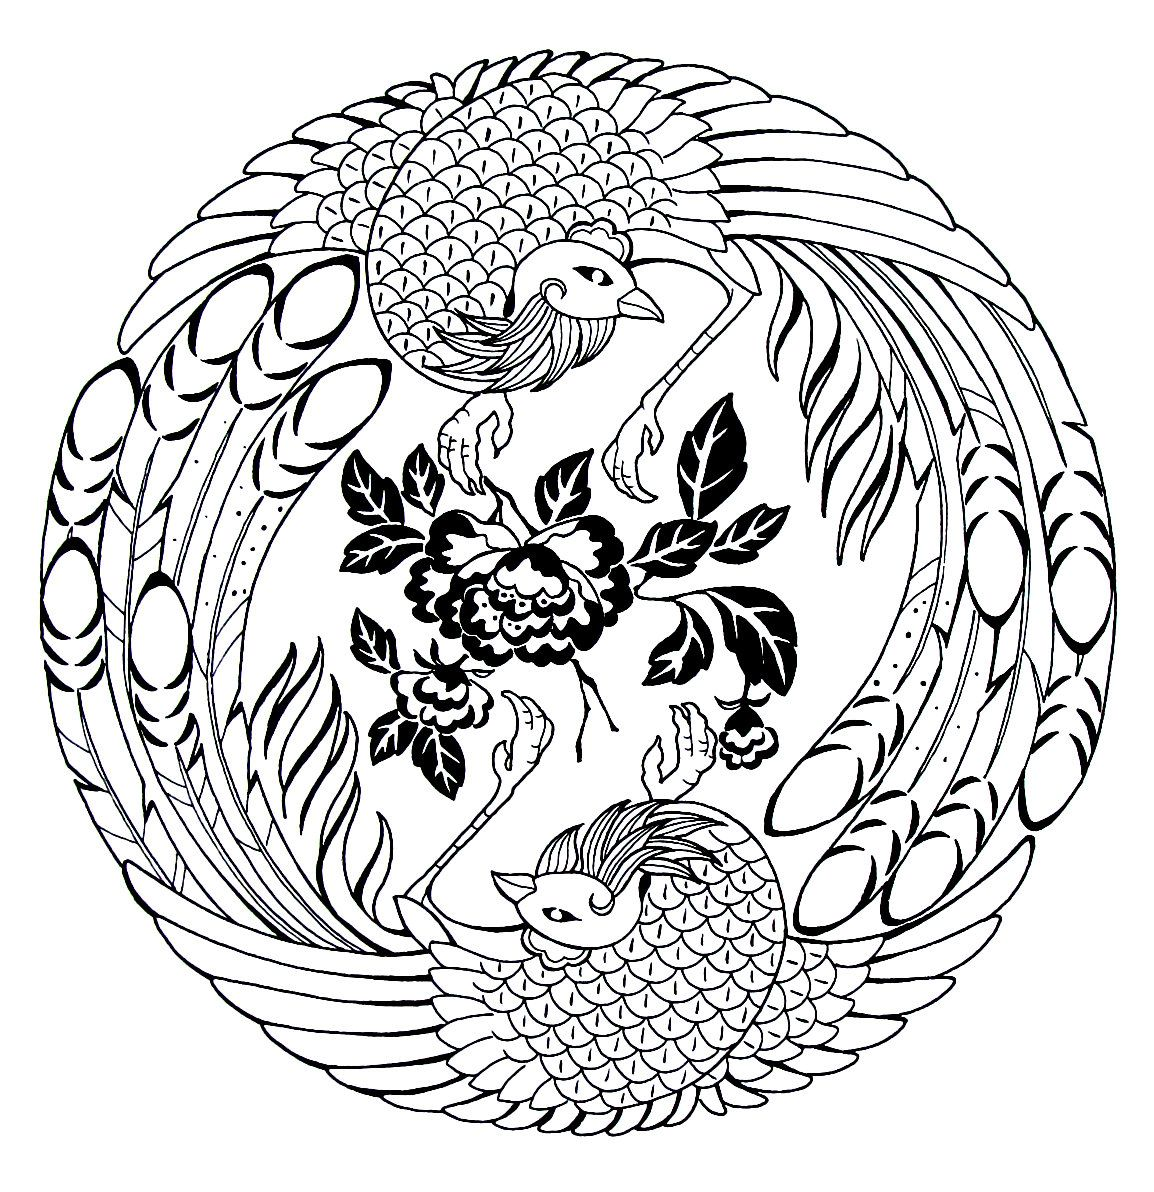 Japanese Phoenix And Peonies Coloring Book Printable Page Designs Coloring Books Peacock Coloring Pages Coloring Books